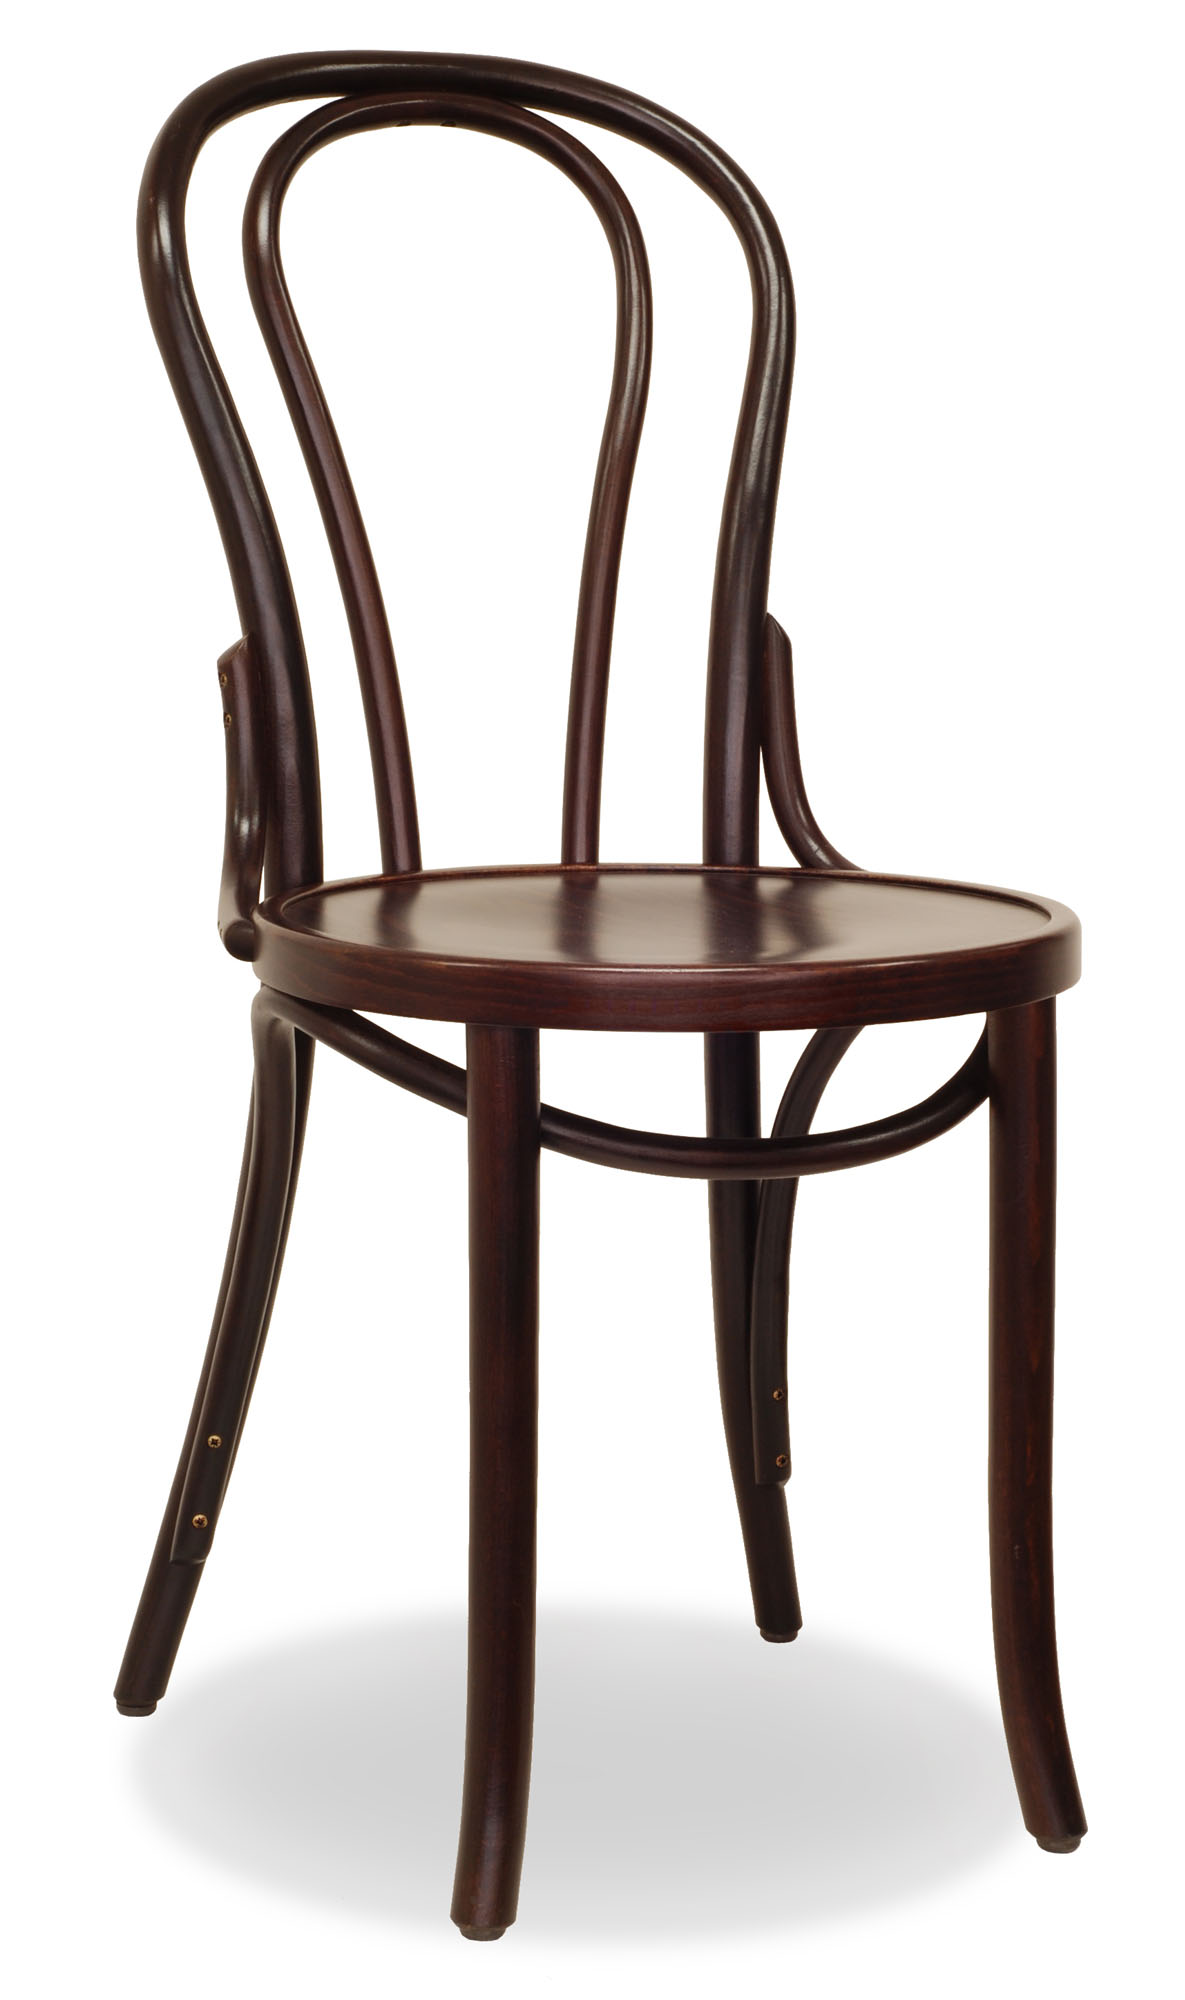 Bent Wood Chairs Bentwood Chairs Now Available Online In Australia